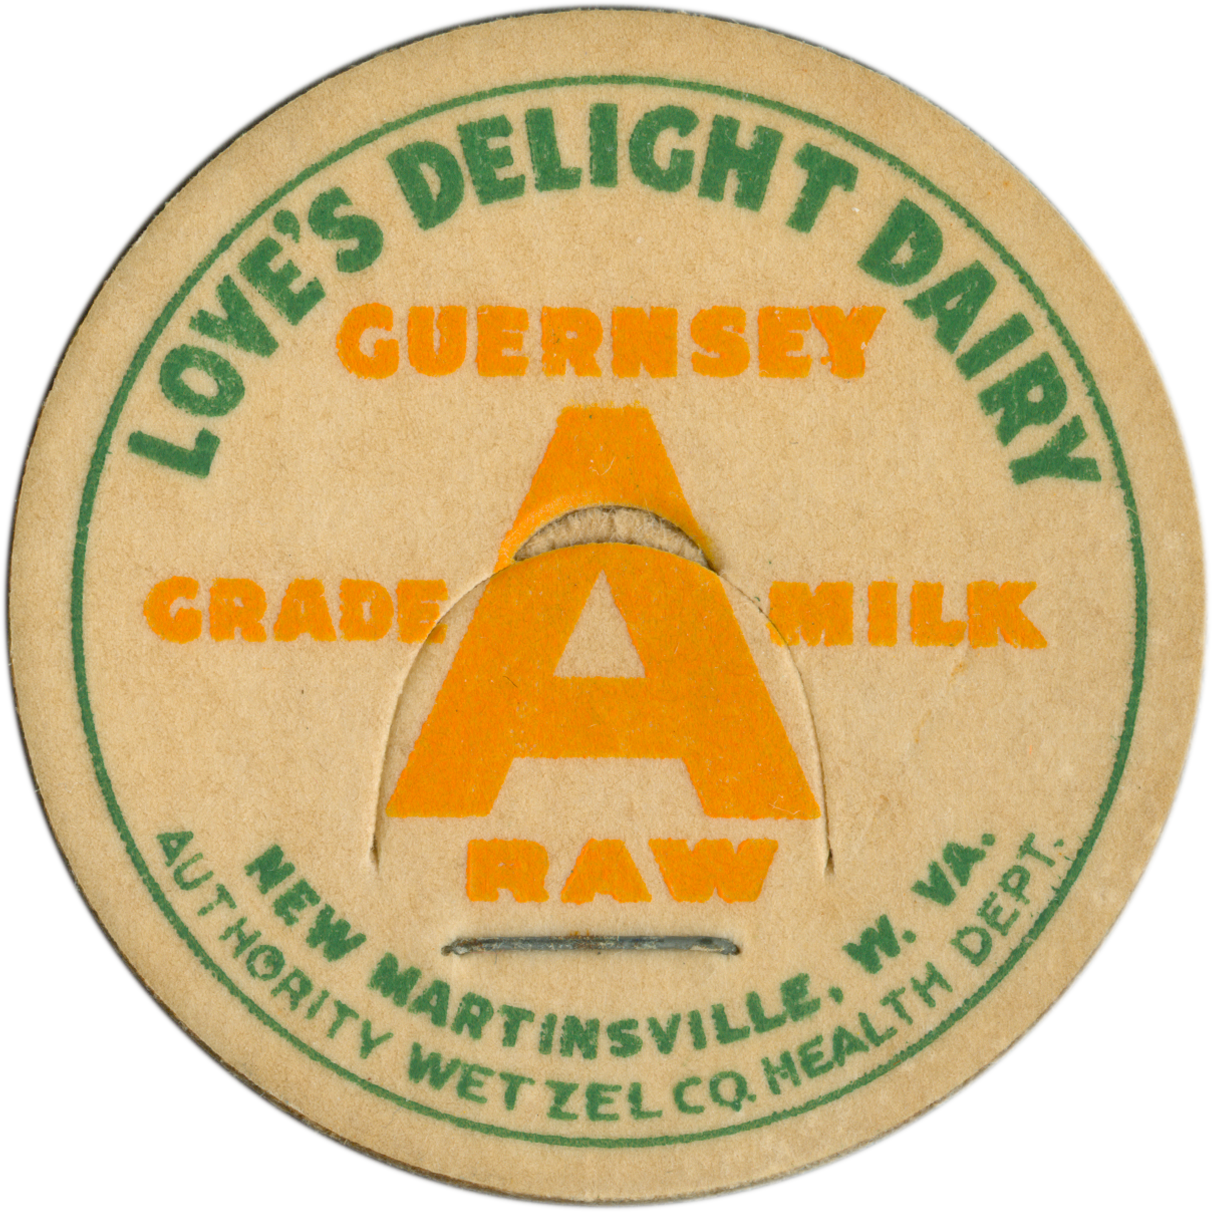 VernacularCircle__0000s_0029_Love's-Delight-Dairy---Grade-A-Raw-Milk-.png